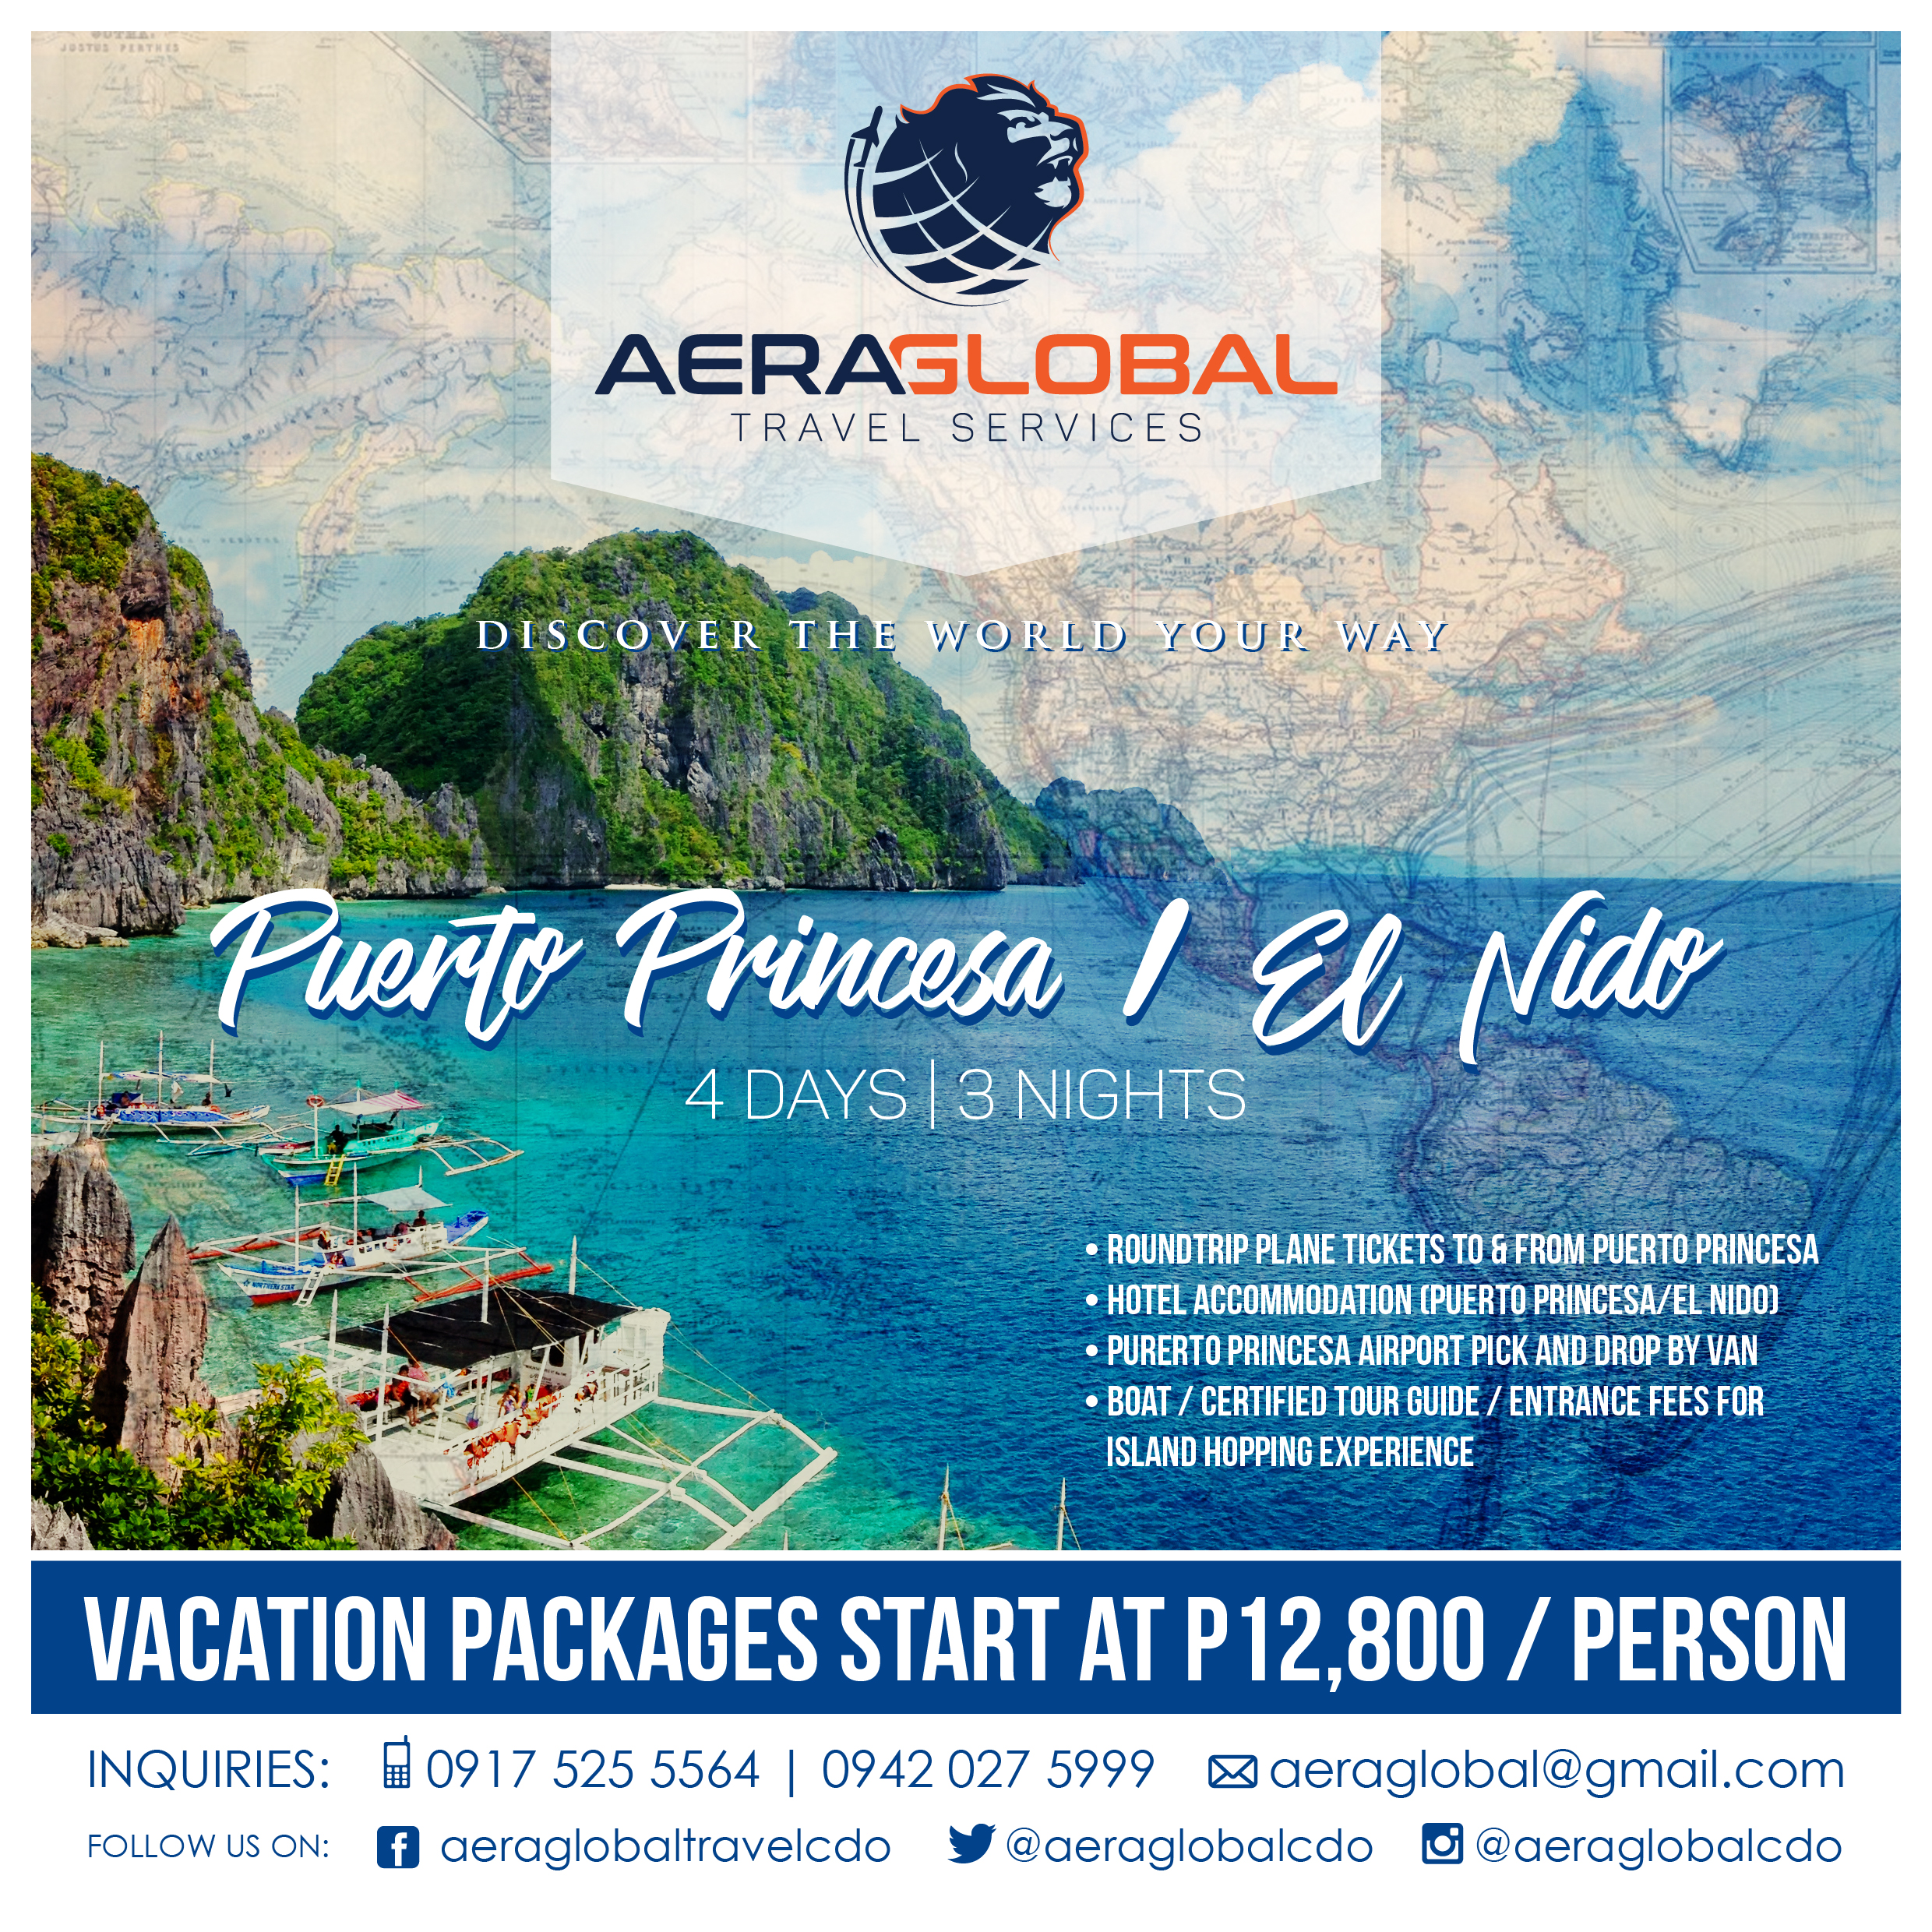 Aera Global Travel Services' Palawan Package